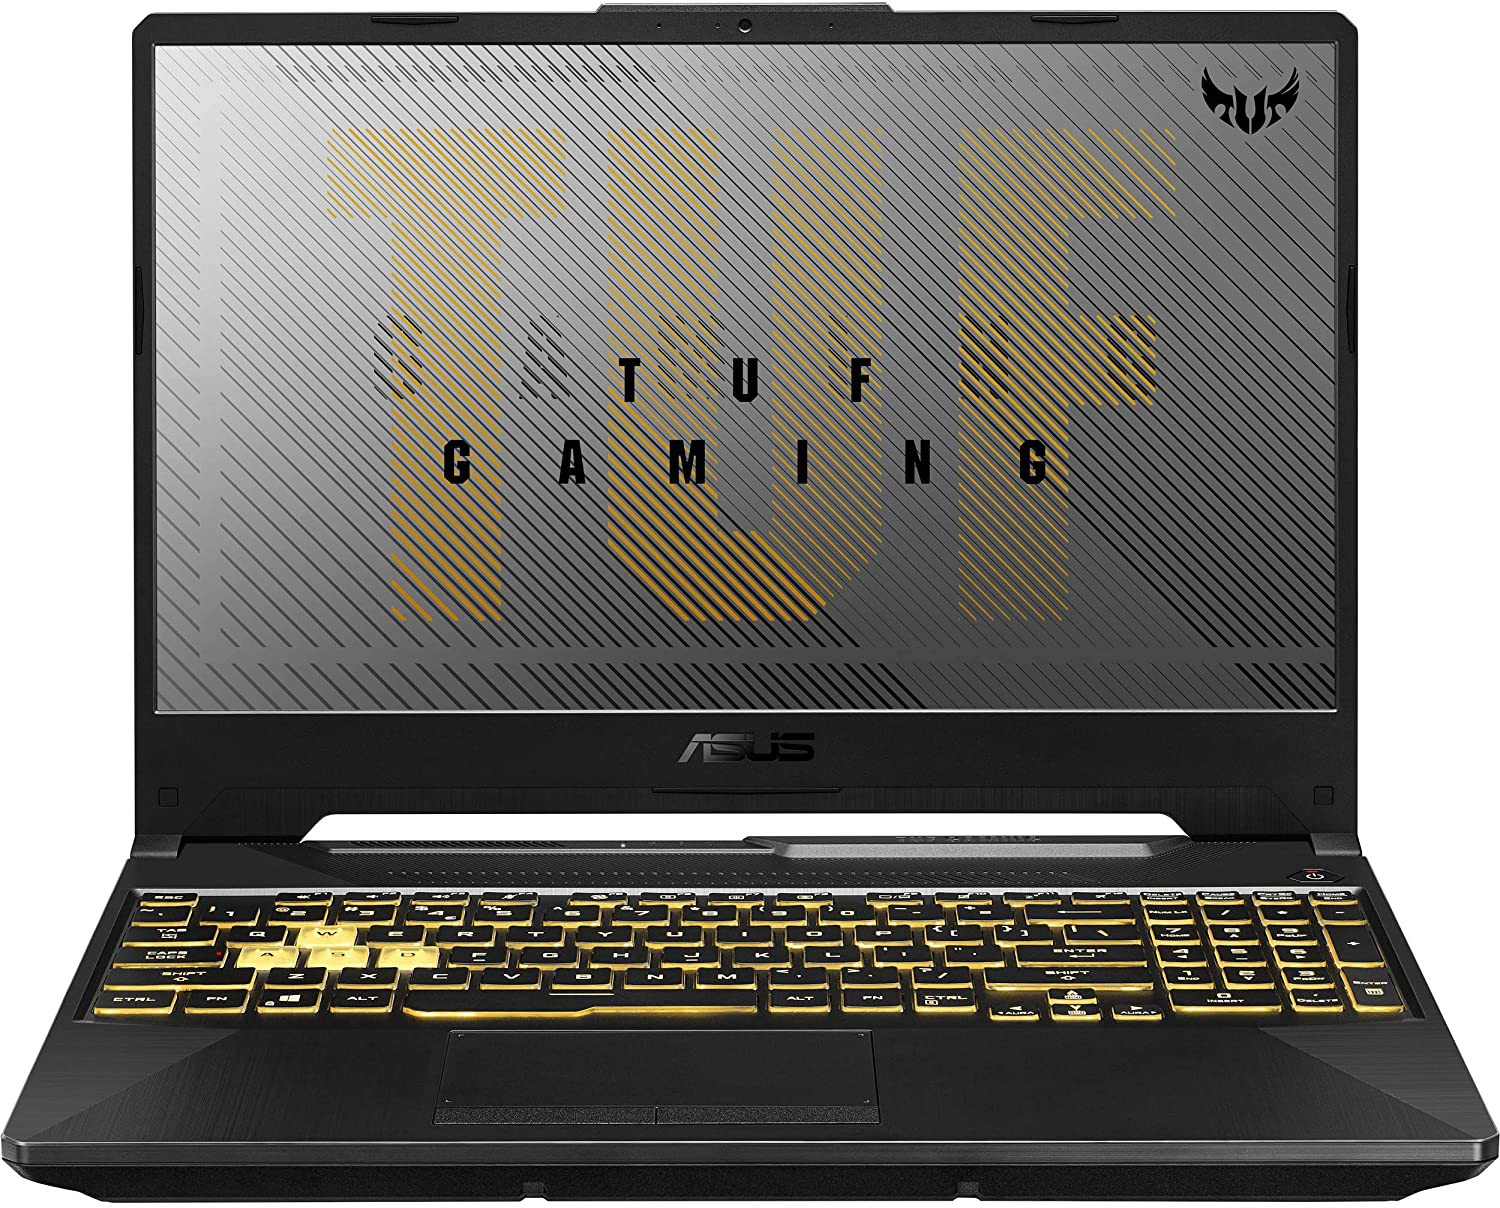 Asus TUF performance machine learning, deep learning, data science laptop